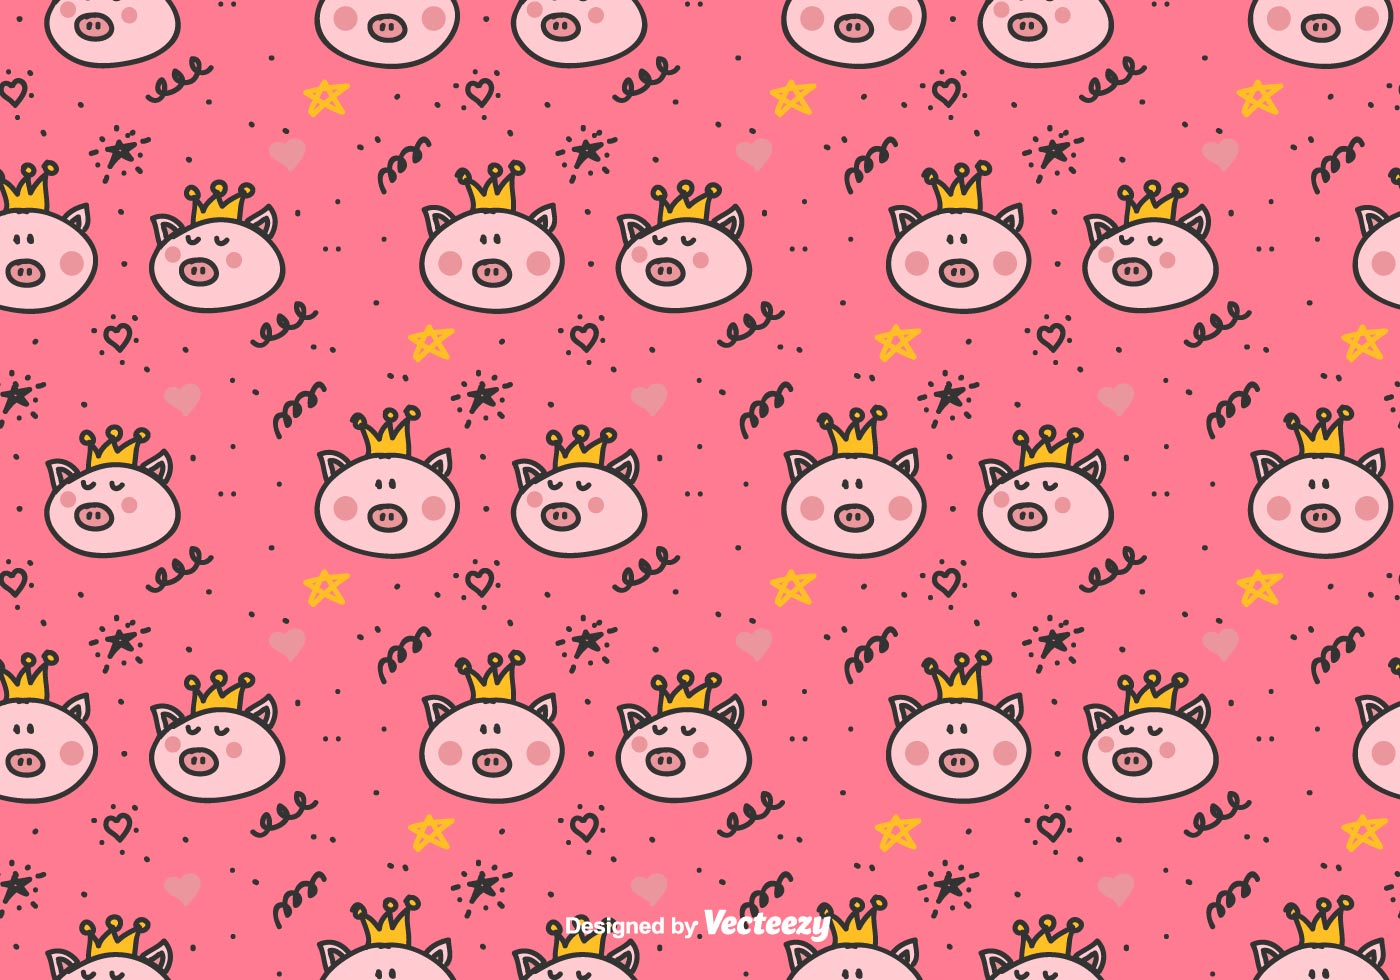 Wallpaper Cute Little Girl Cartoon Princess Pigs Vector Pattern Download Free Vector Art